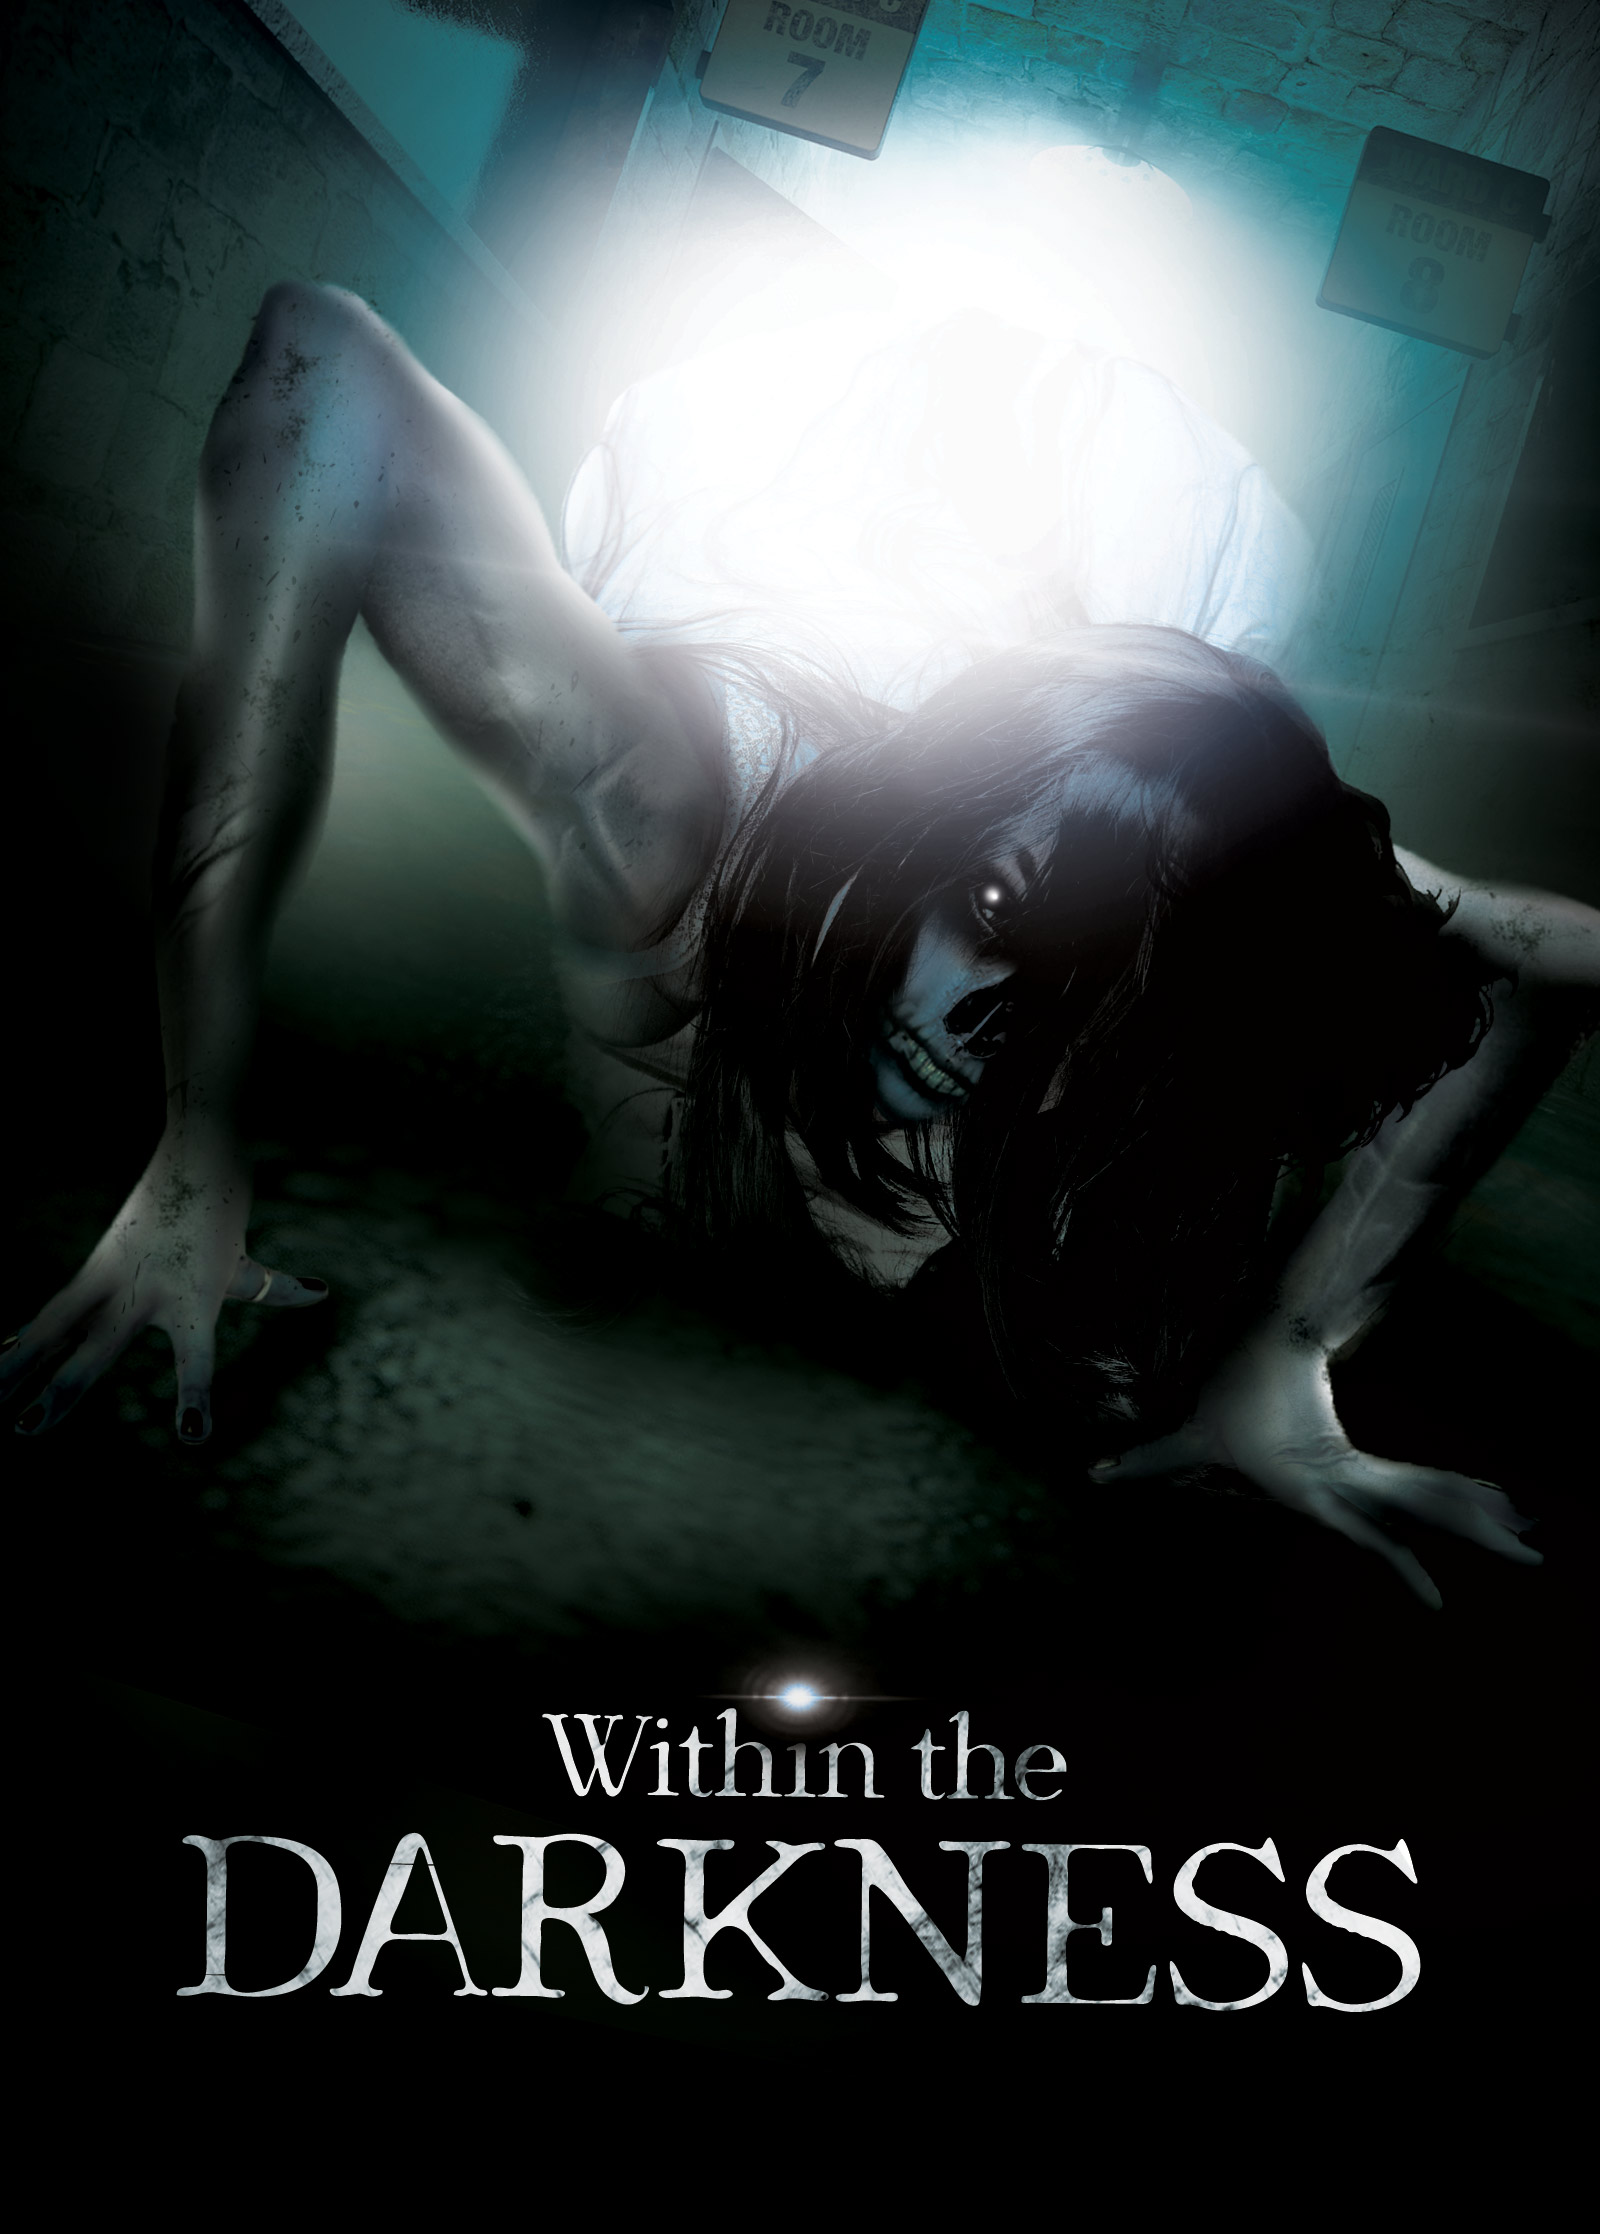 Within the Darkness Poster